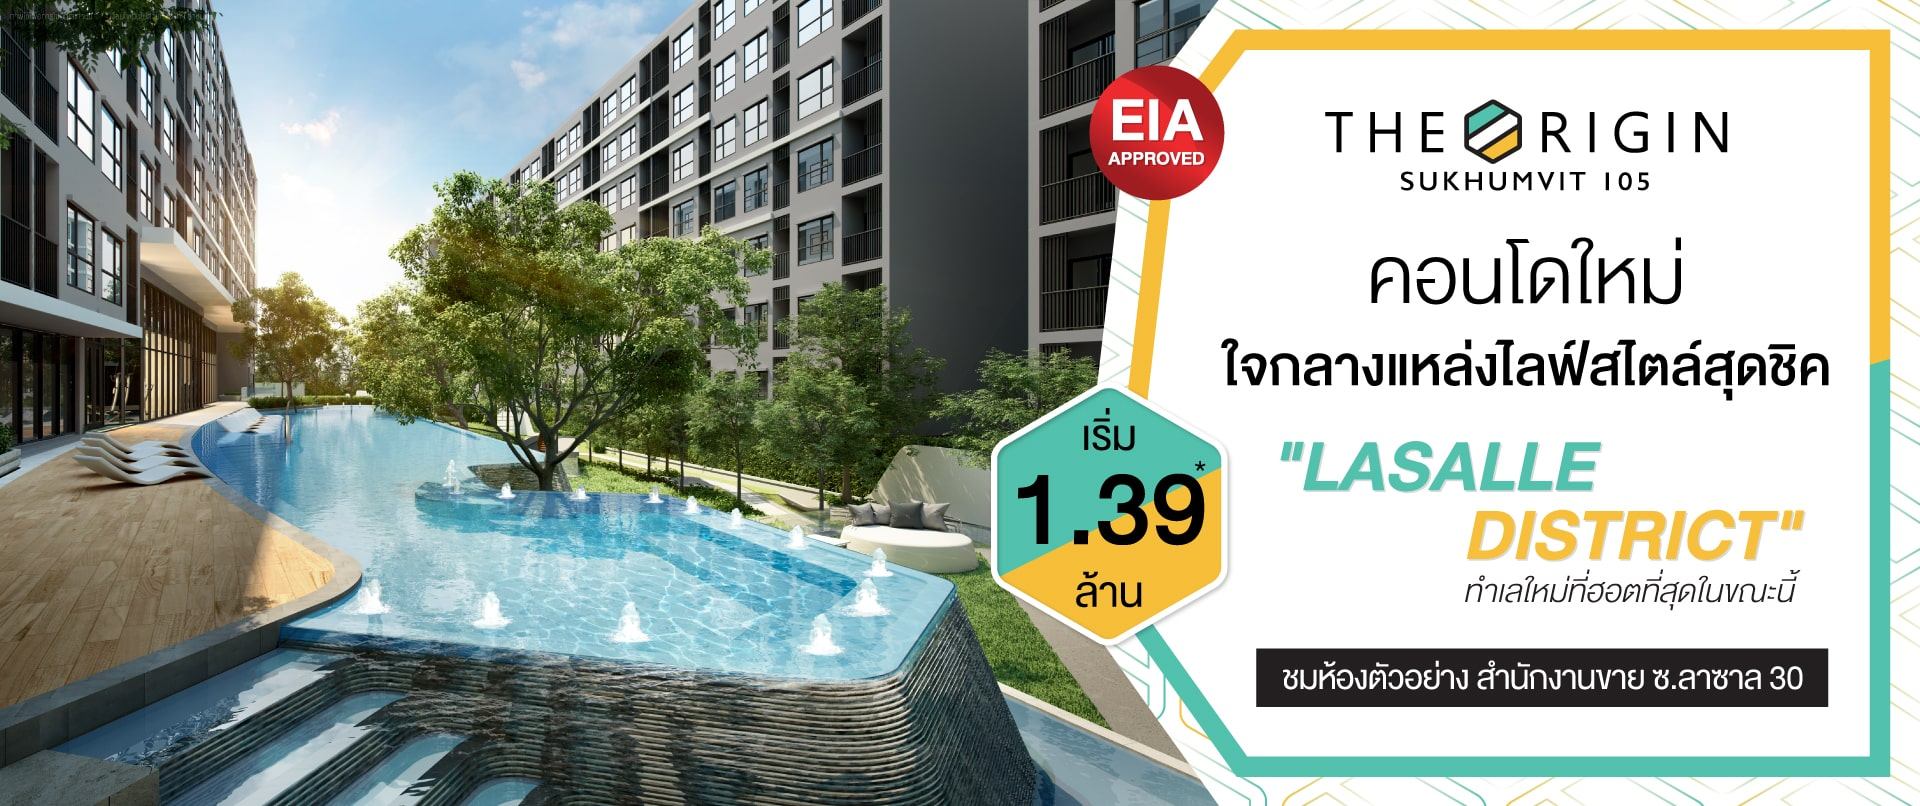 The-Origin-Sukhumvit-105-Pre-Sale